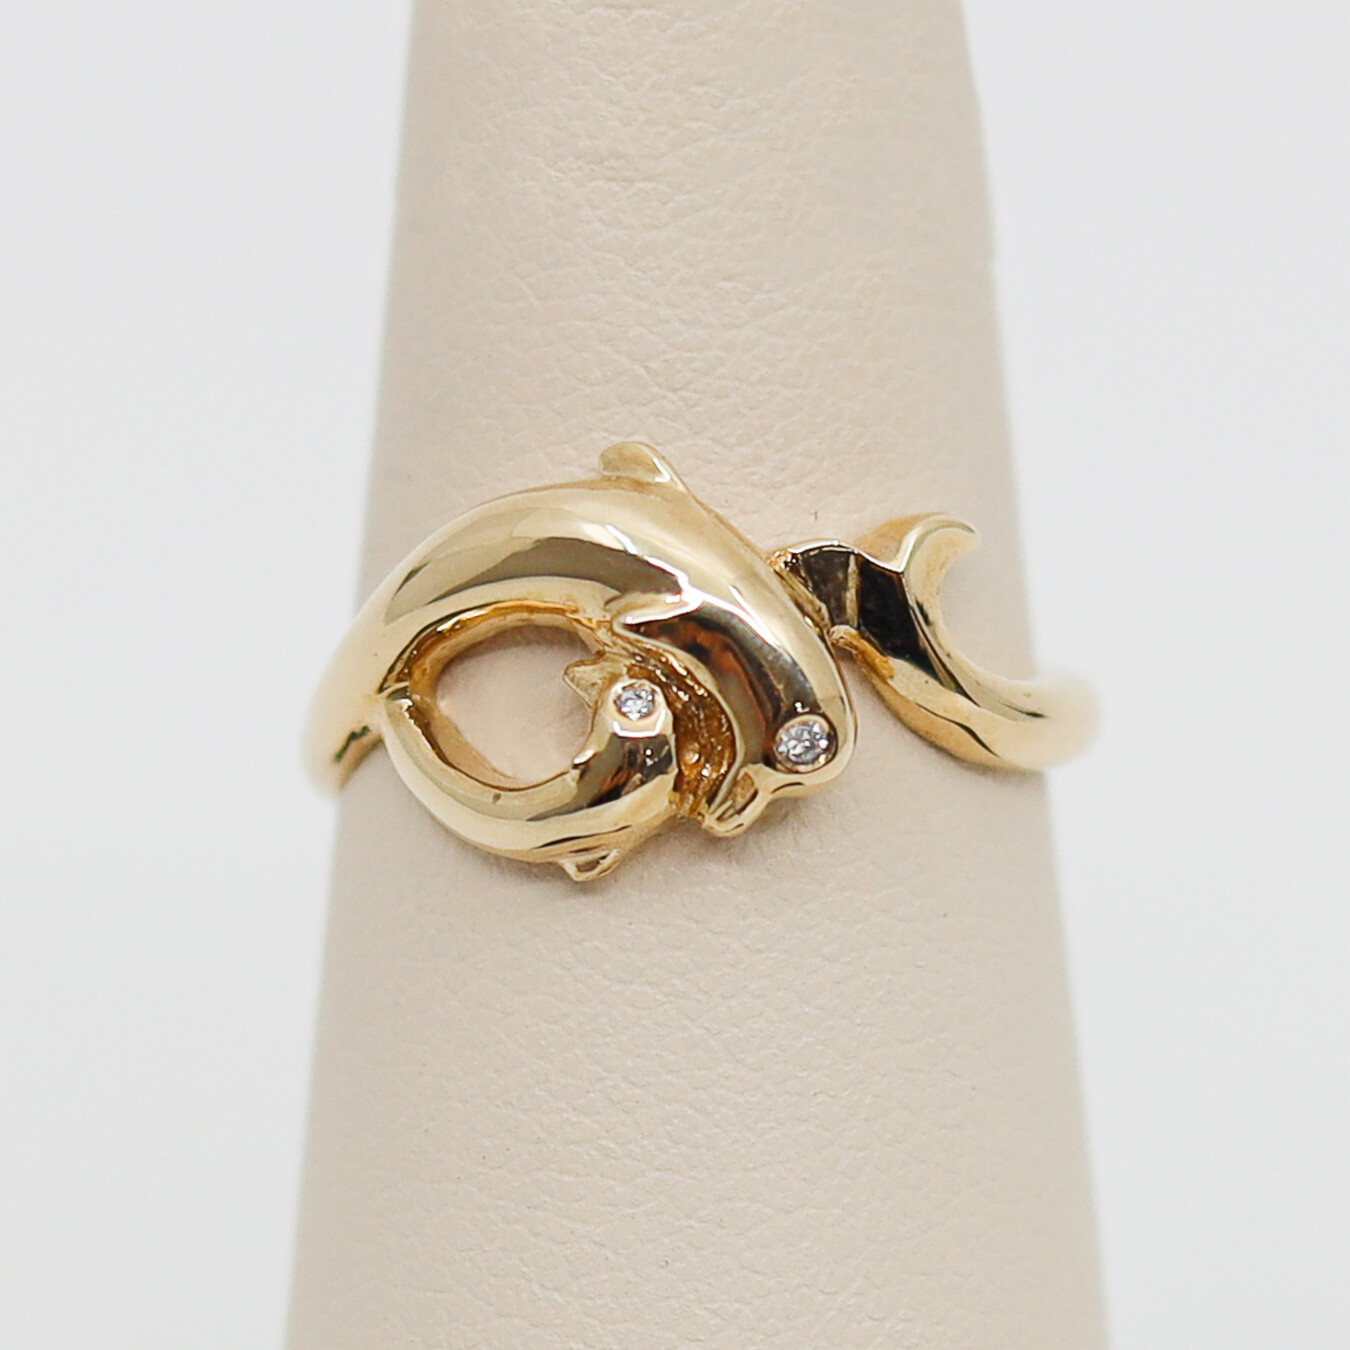 Dancing Dolphin Ring with Diamonds